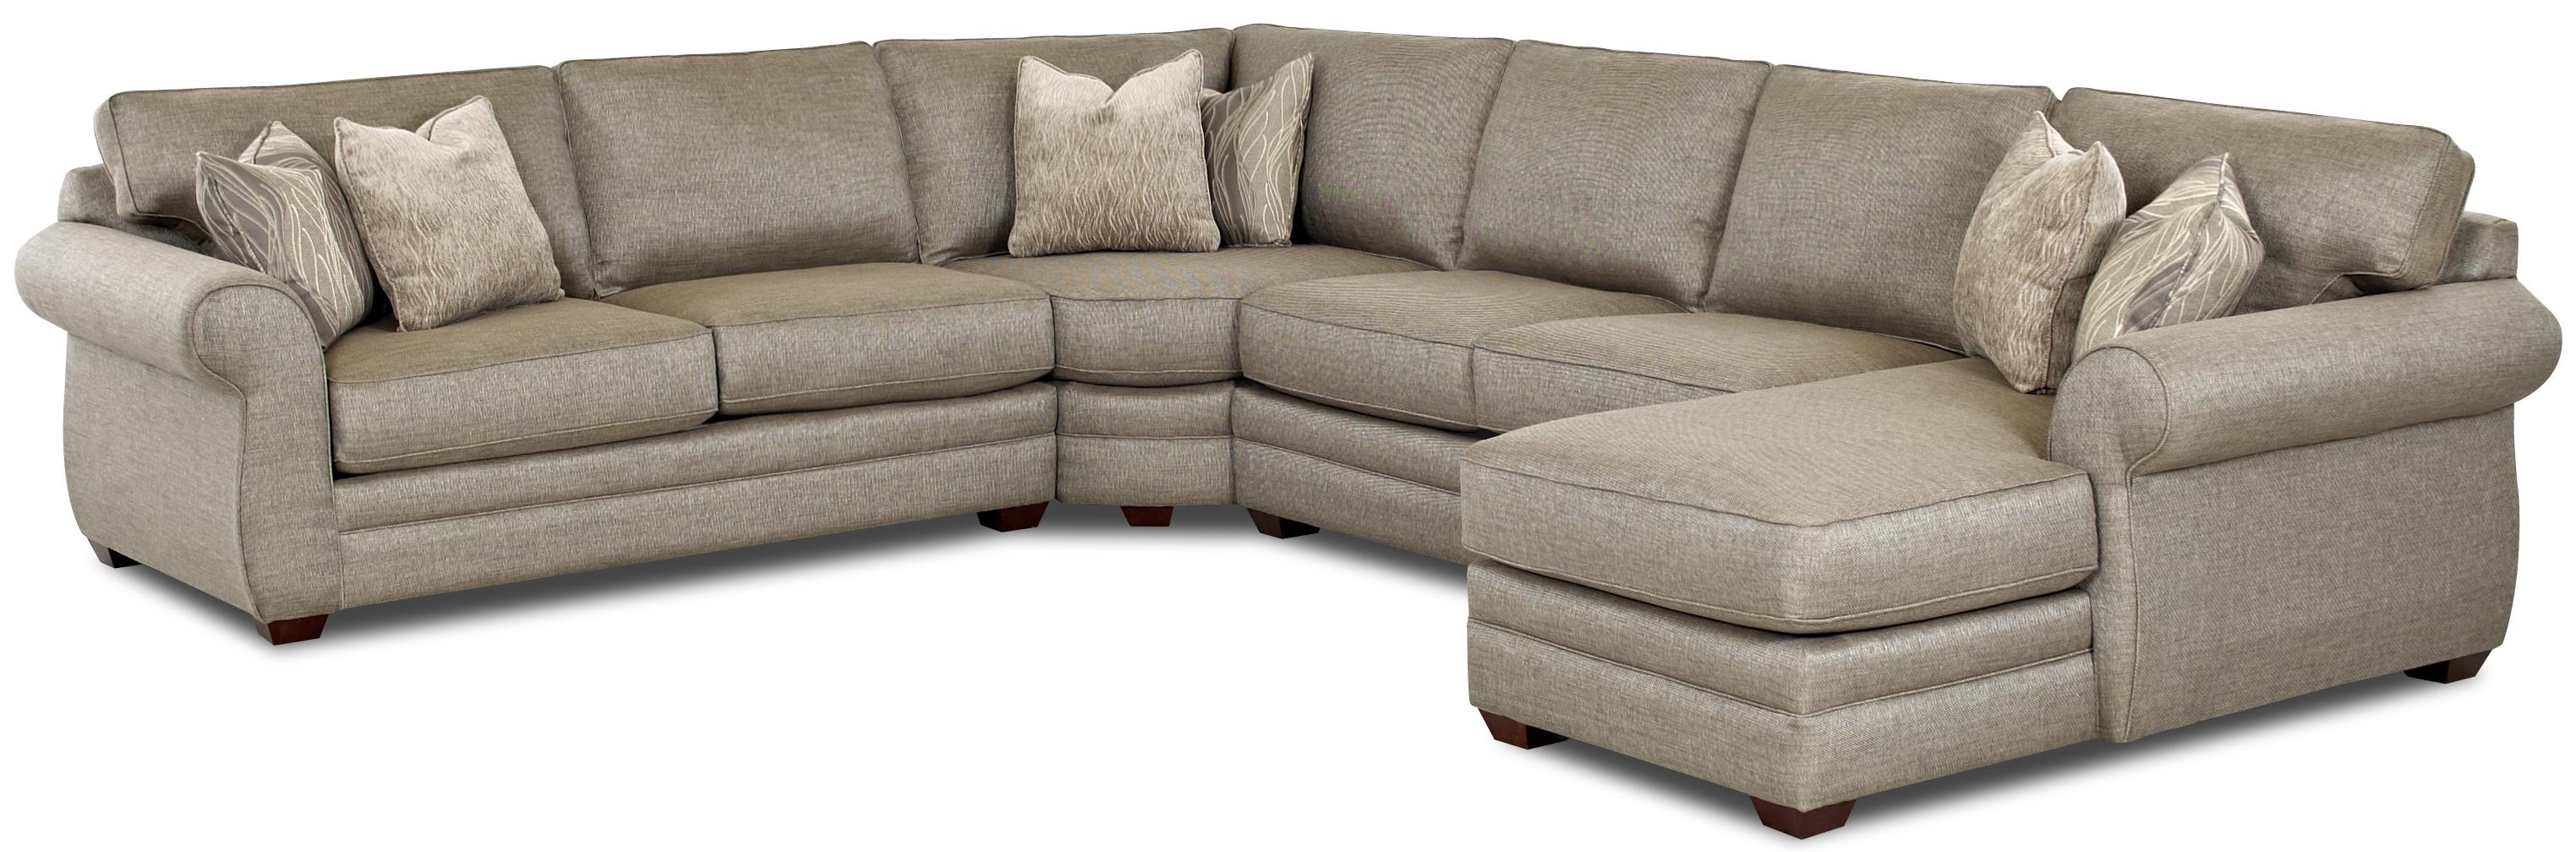 Clanton transitional sectional sofa with right chaise by for Couch lounge